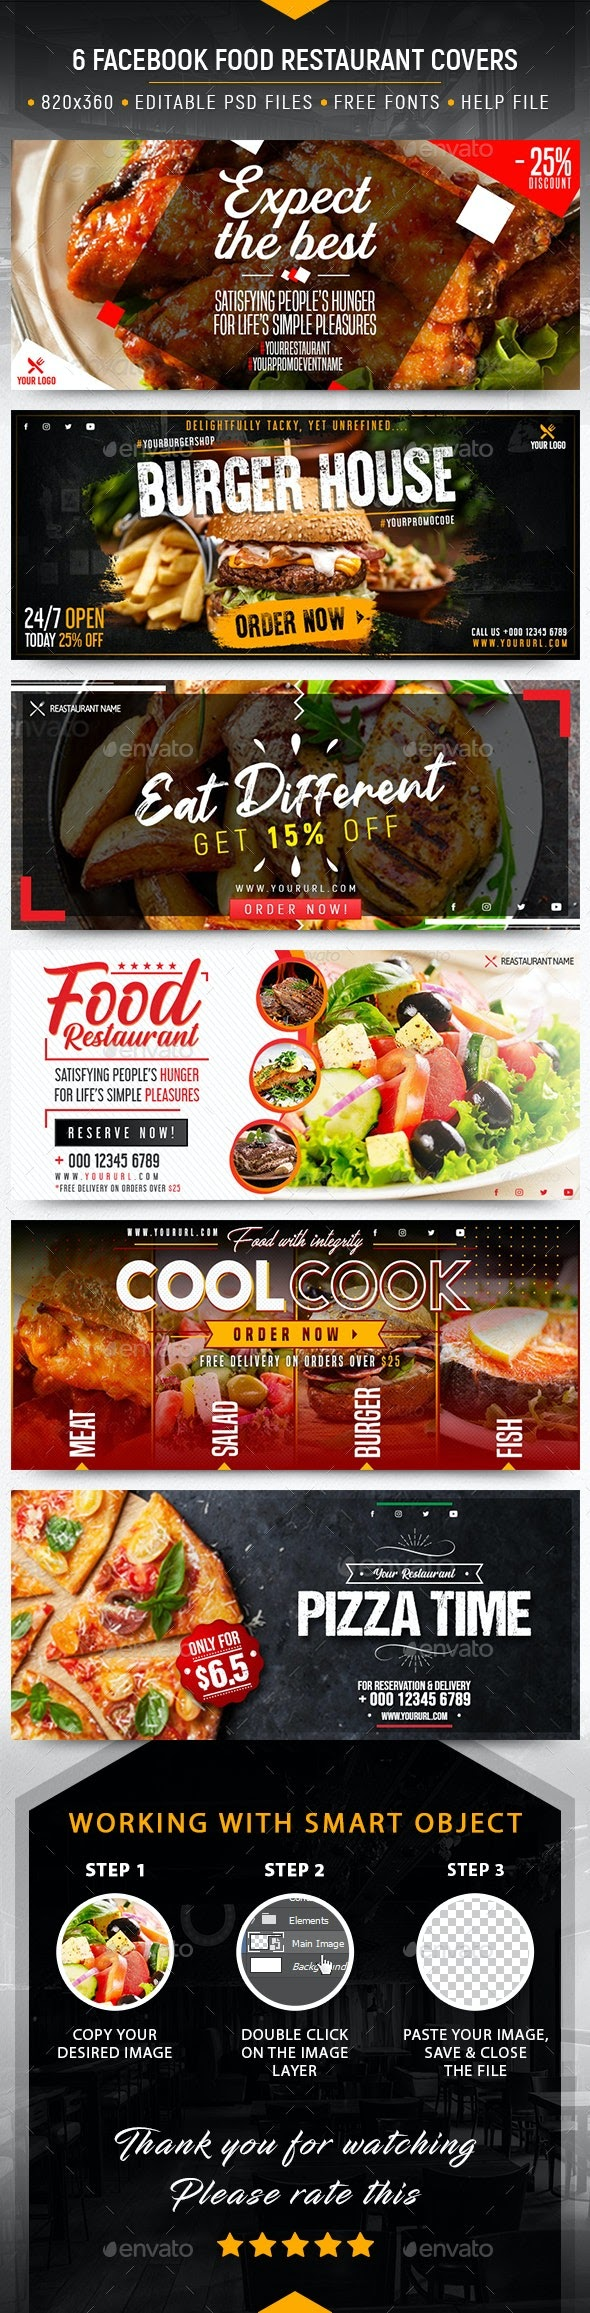 Facebook Food Restaurant Covers 28297750